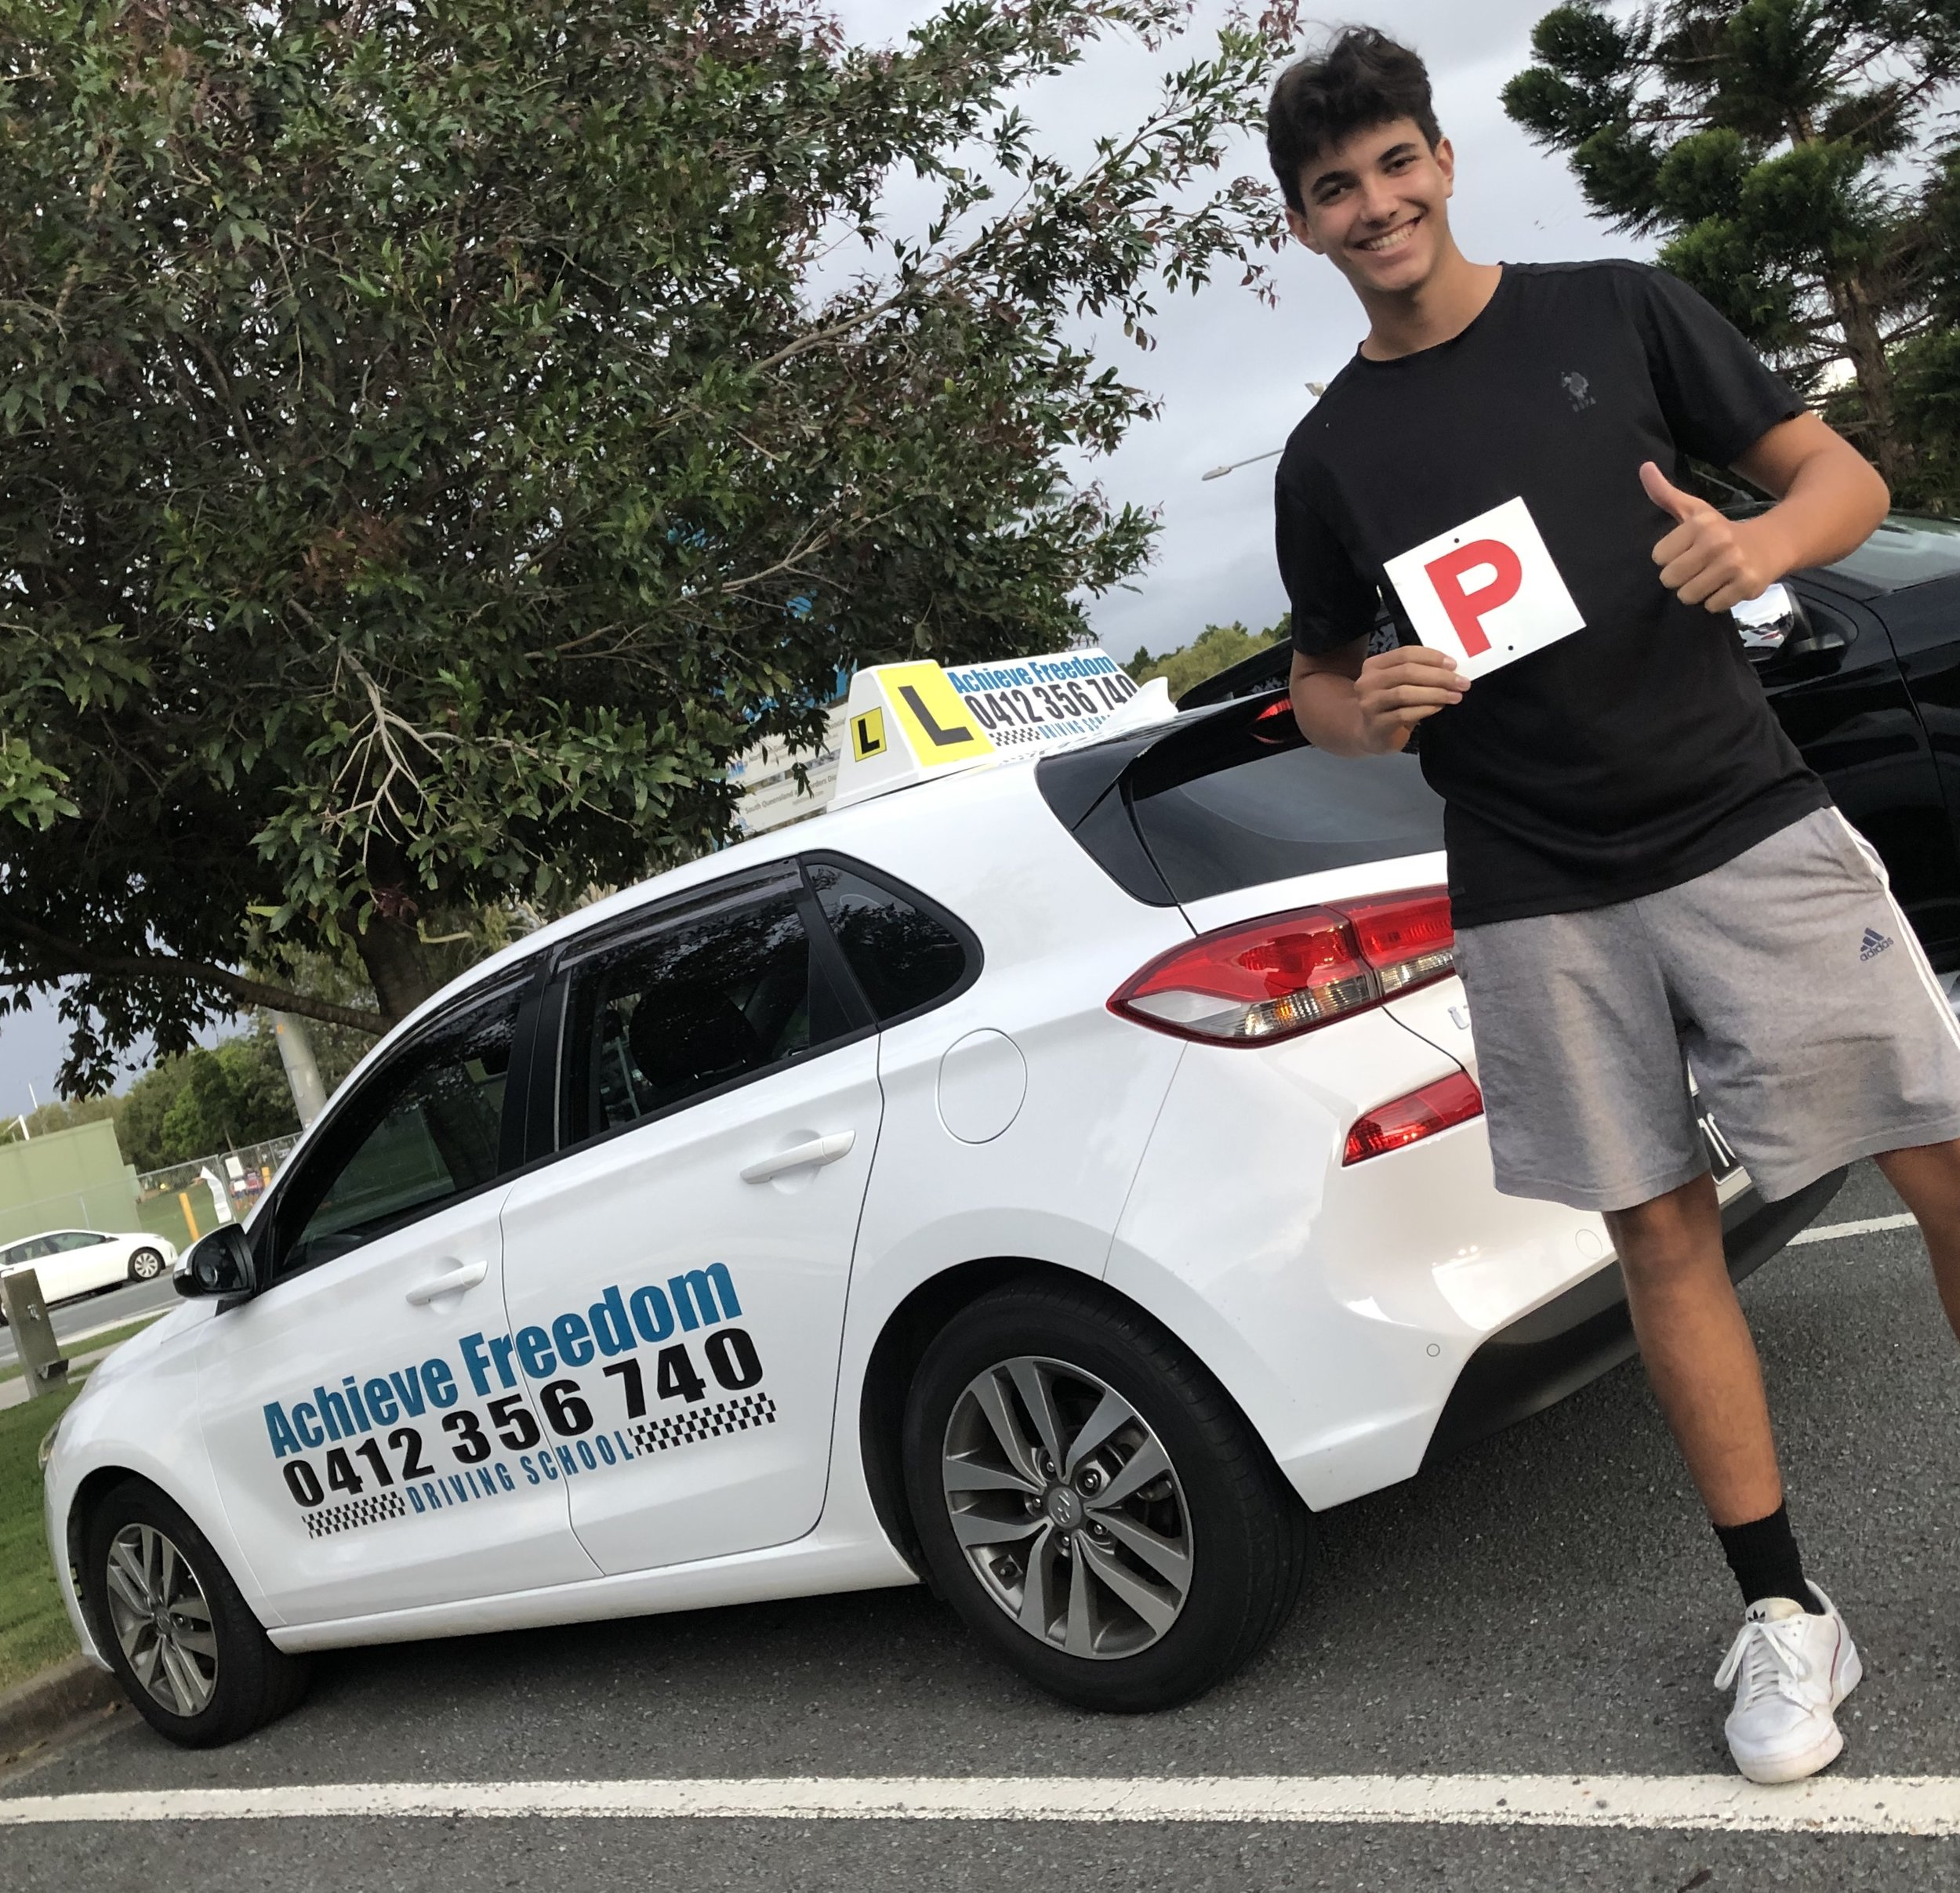 congratulations to Tomislav Ruzic on passing in the manual Hyundai i30 at the Southport driving test centre TMR. well done, drive safe buddy.